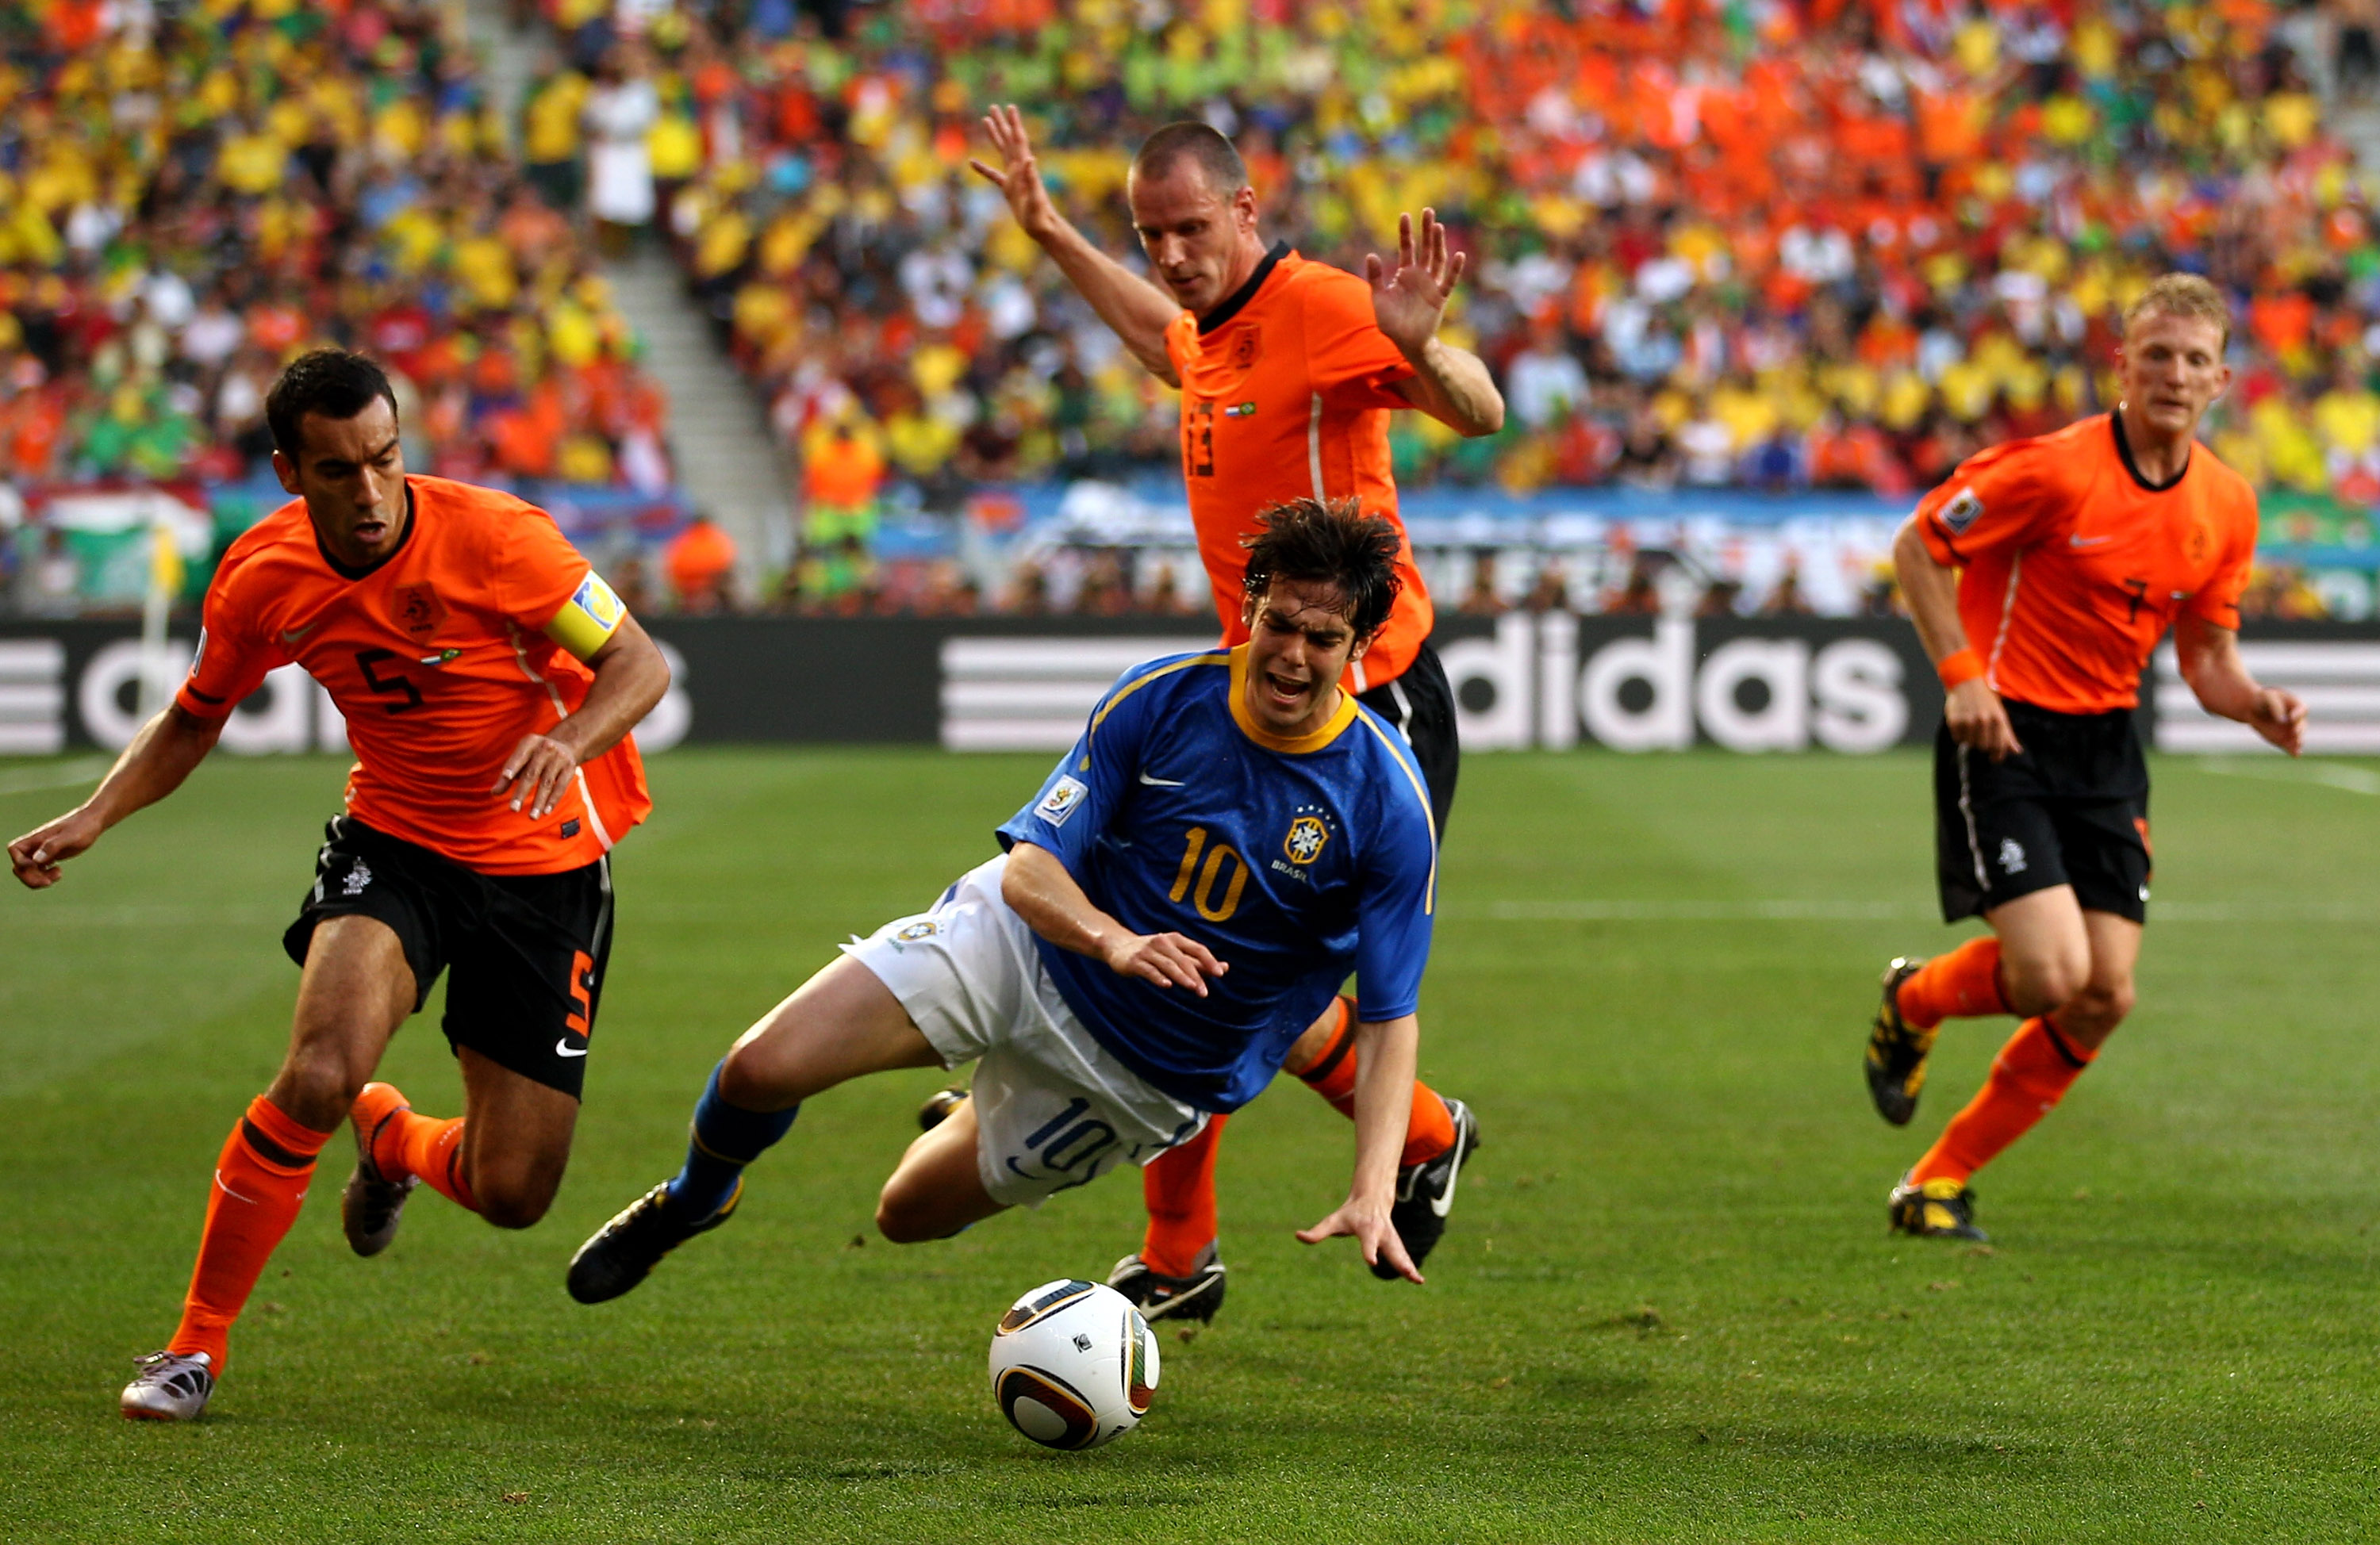 PORT ELIZABETH, SOUTH AFRICA - JULY 02:  Kaka of Brazil is brought down by Giovanni Van Bronckhorst and Andre Ooijer of The Netherlands during the 2010 FIFA World Cup South Africa Quarter Final match between Netherlands and Brazil at Nelson Mandela Bay St